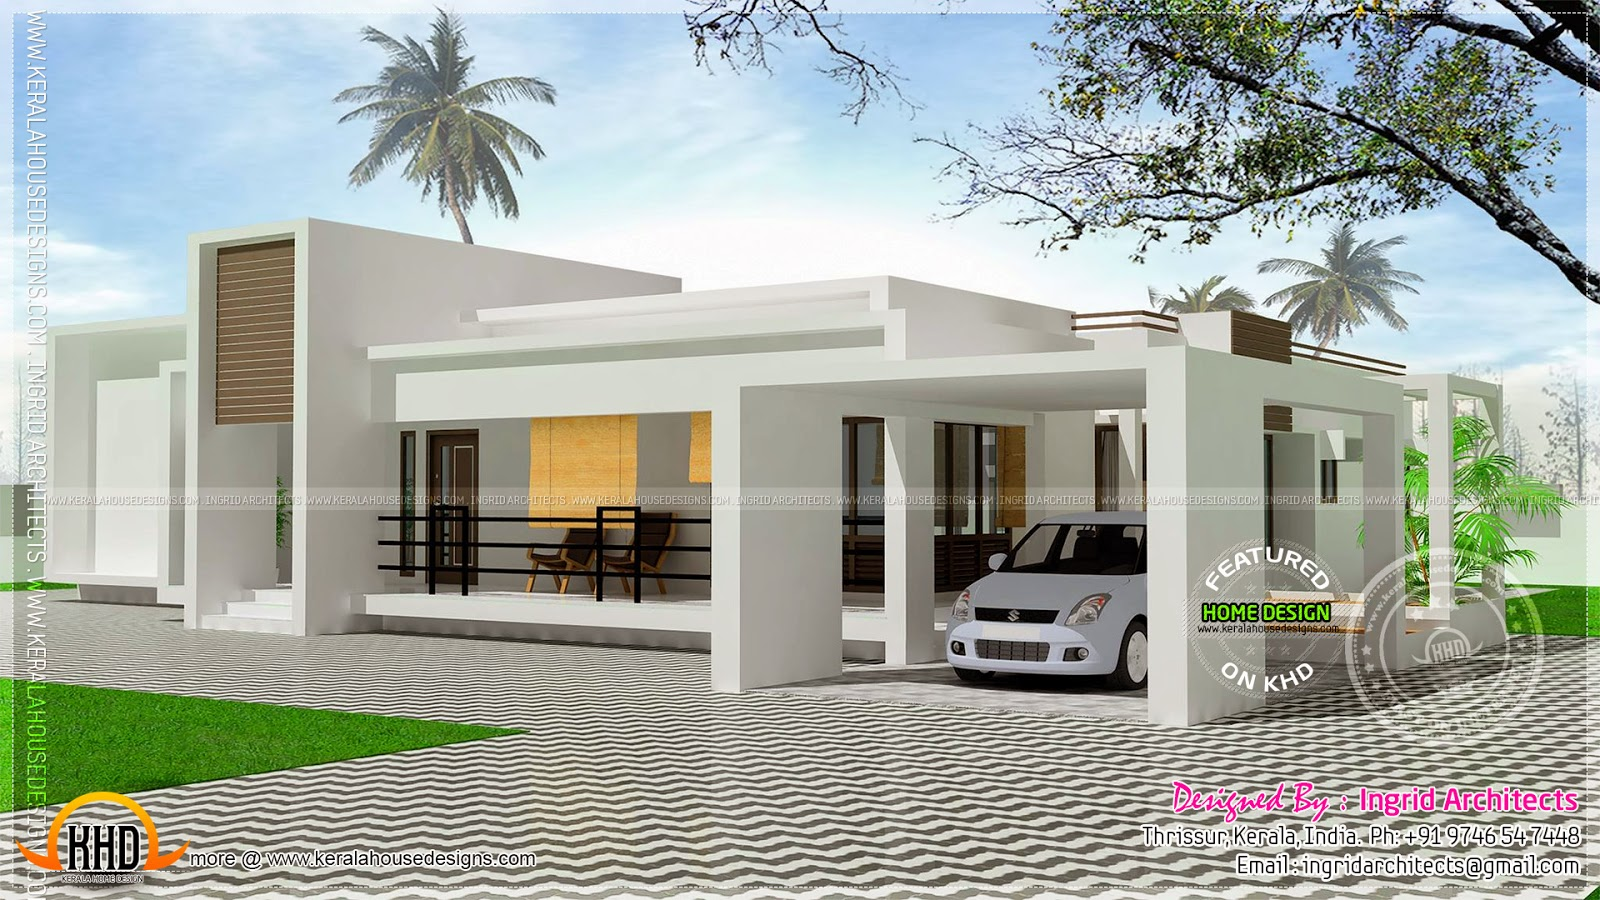 Contemporary single storied luxury home kerala home design and floor